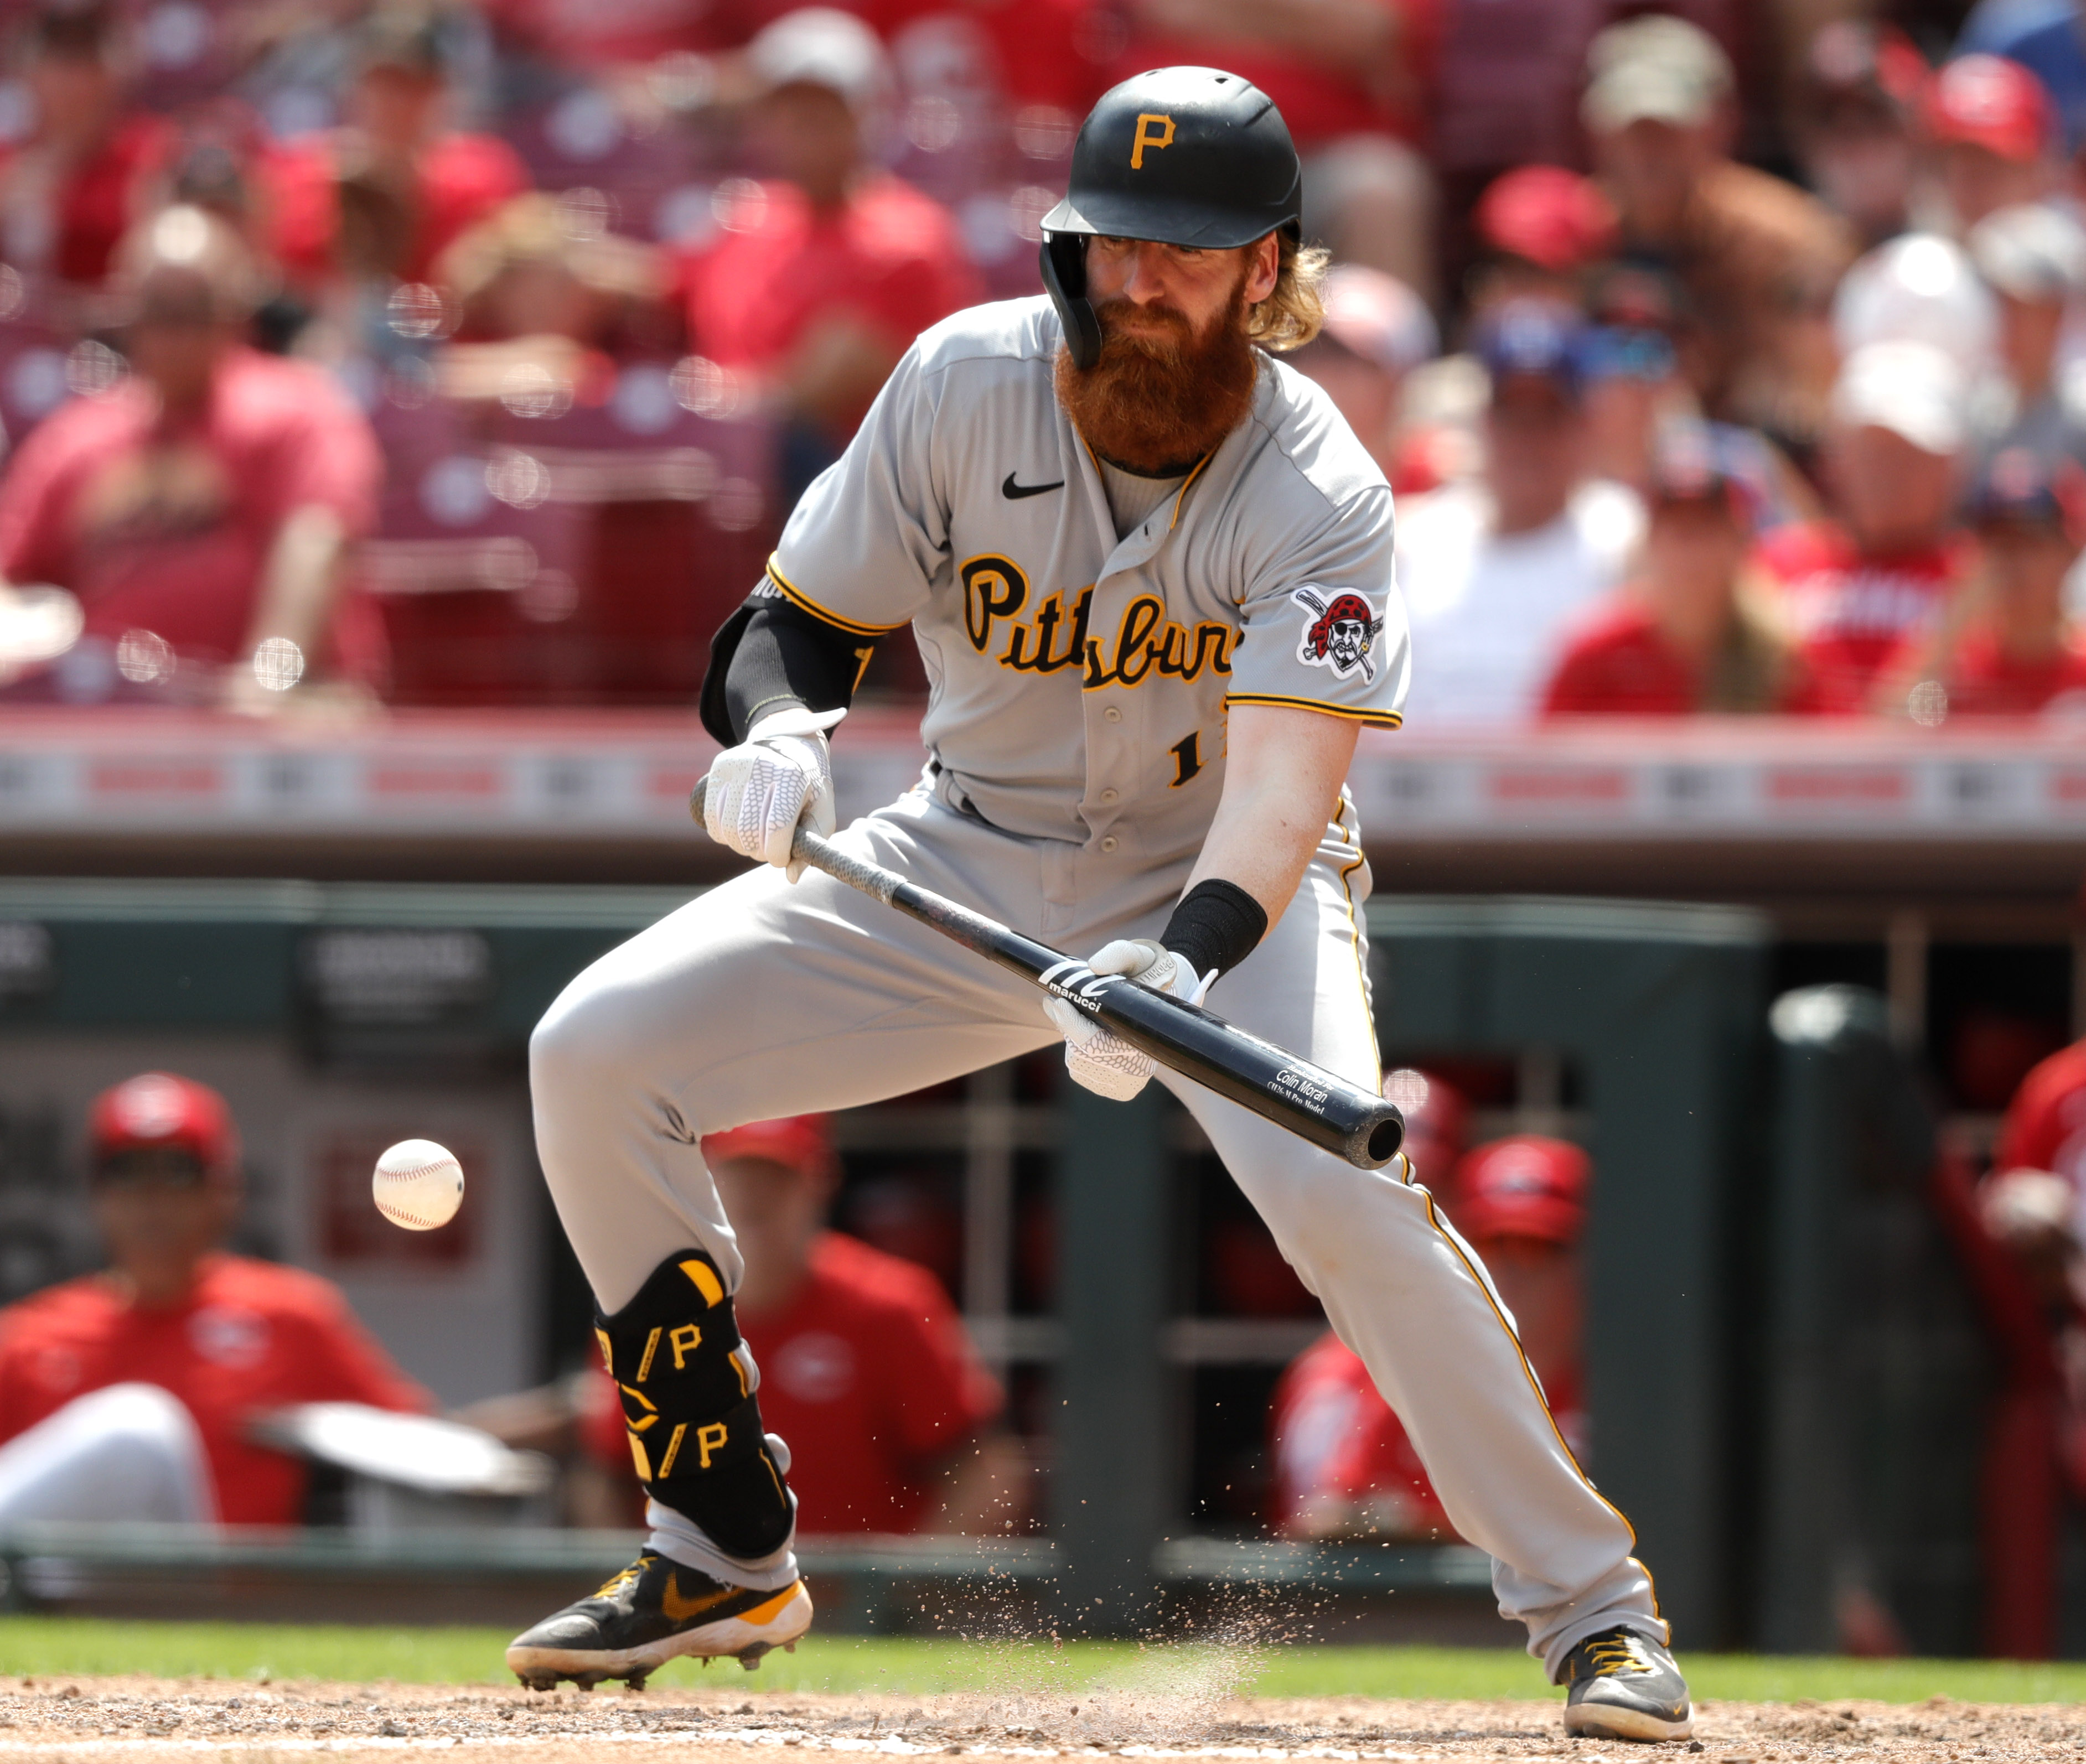 St. Louis Cardinals vs Pittsburgh Pirates Prediction, 8/11/2021 MLB Pick, Tips and Odds